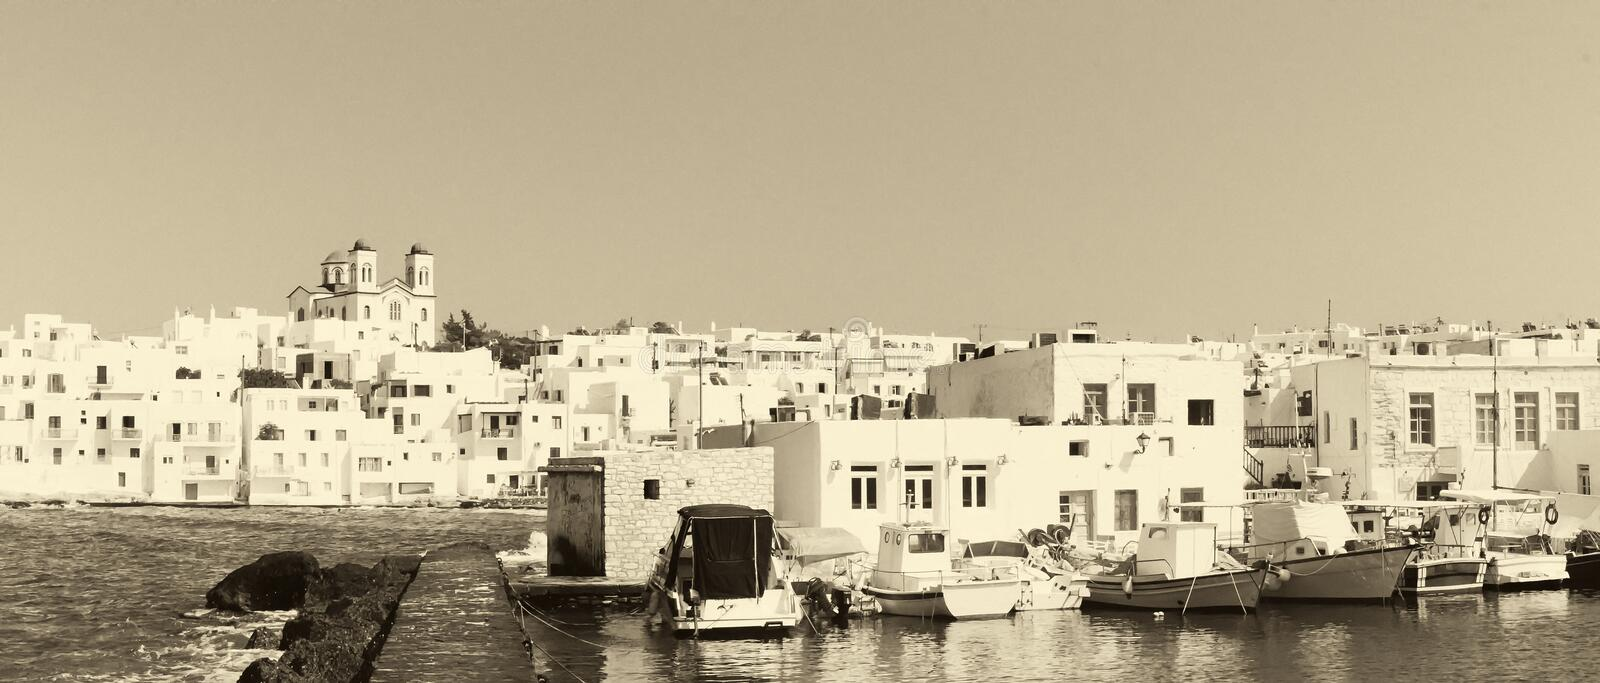 Graphic Naoussa's port at Paros island in Greece in old retro colors. A famous touristic destination. royalty free stock photography